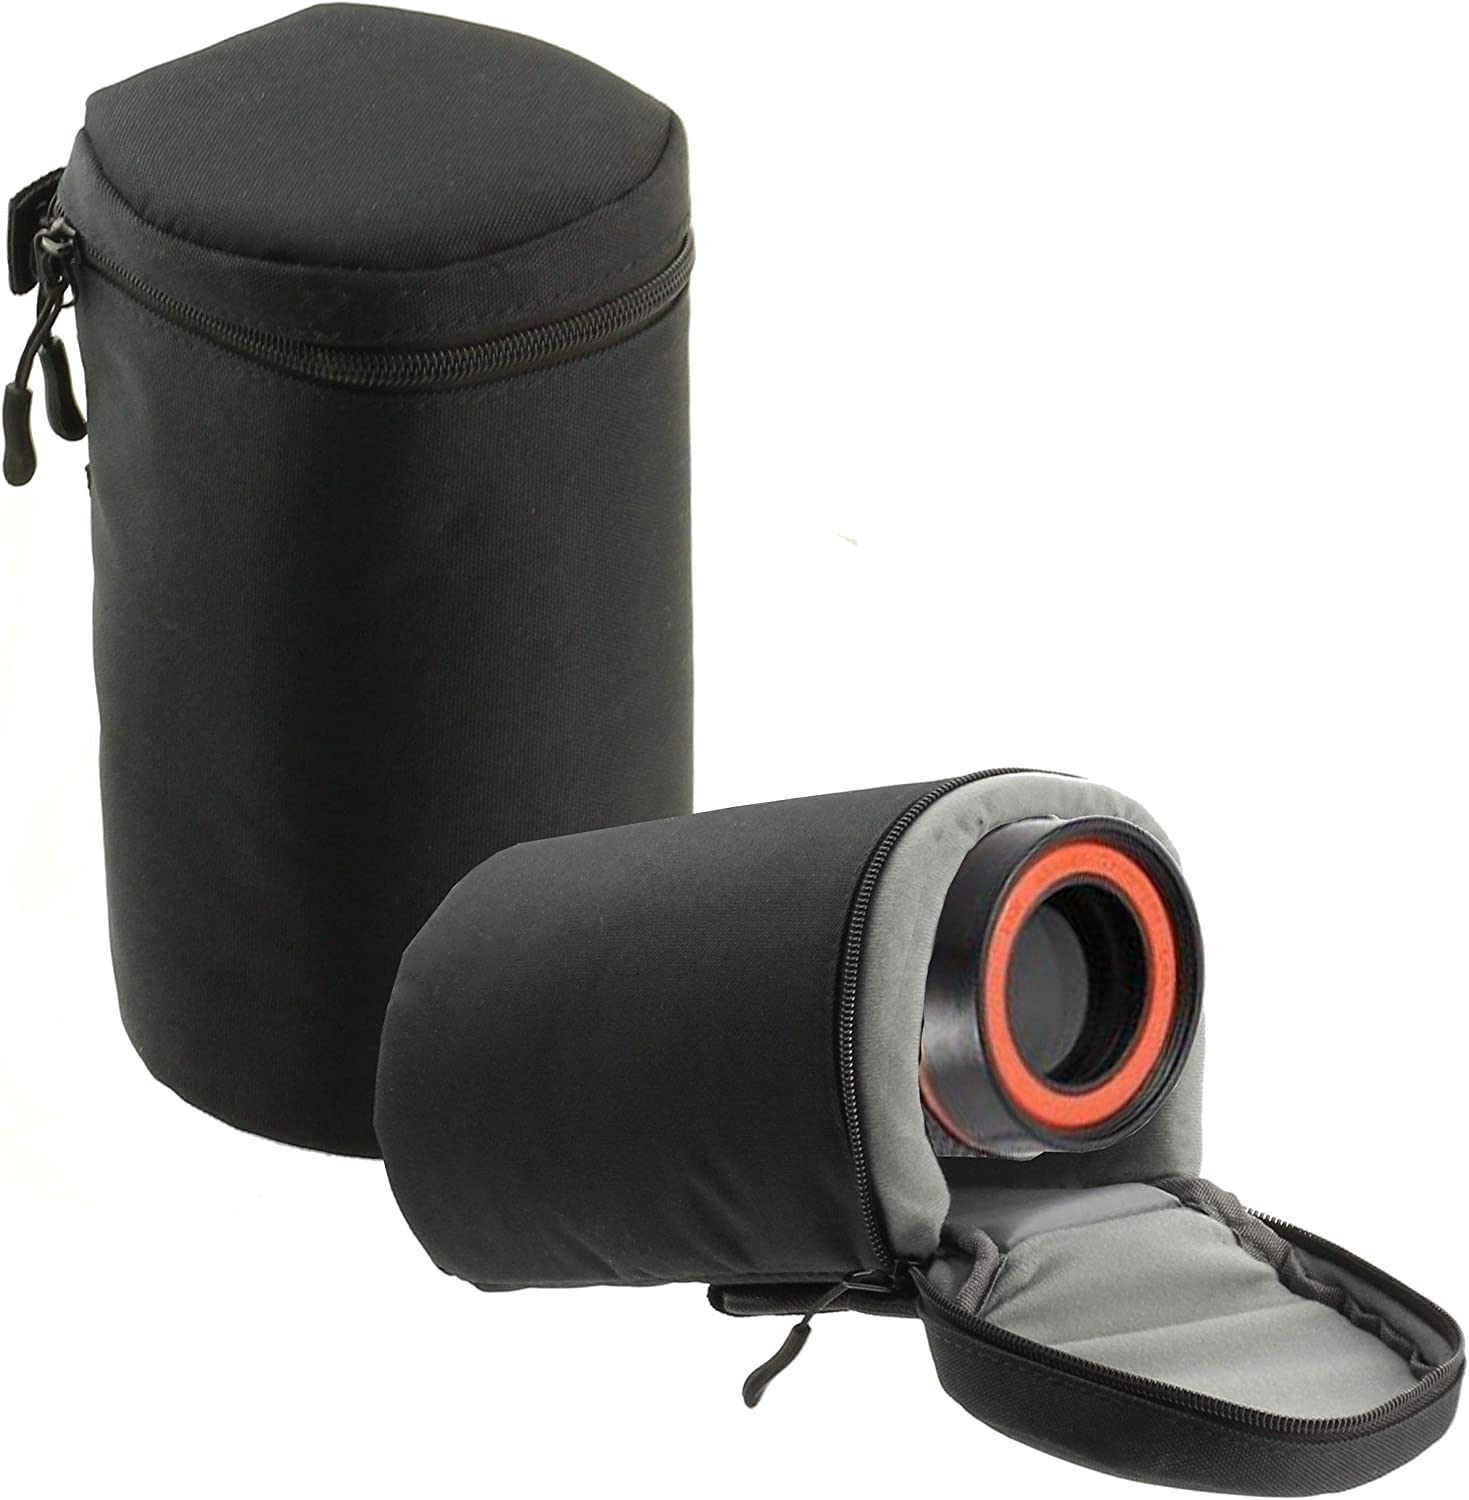 Navitech Black Water Resistant Camera Lens Protective Case Pouch Compatible with The Canon EF 80-200mm f//2.8L Canon EF 70-300mm f//4-5.6L is USM Canon EF 70-200mm f//4 USM